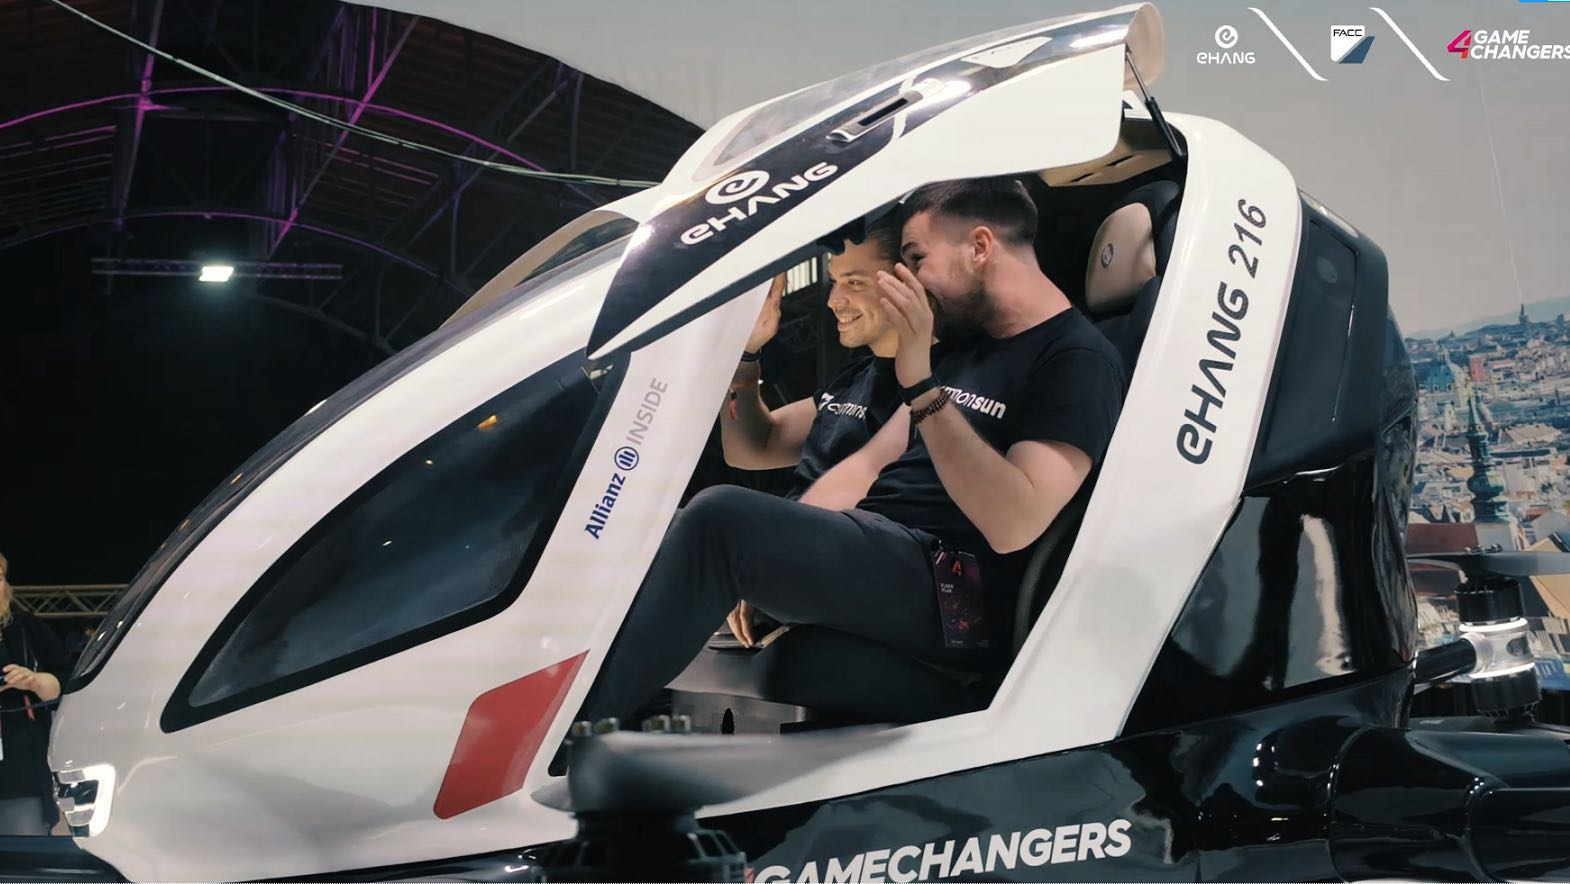 4D experience in 4GAMECHANGERS to enjoy the urban air mobility